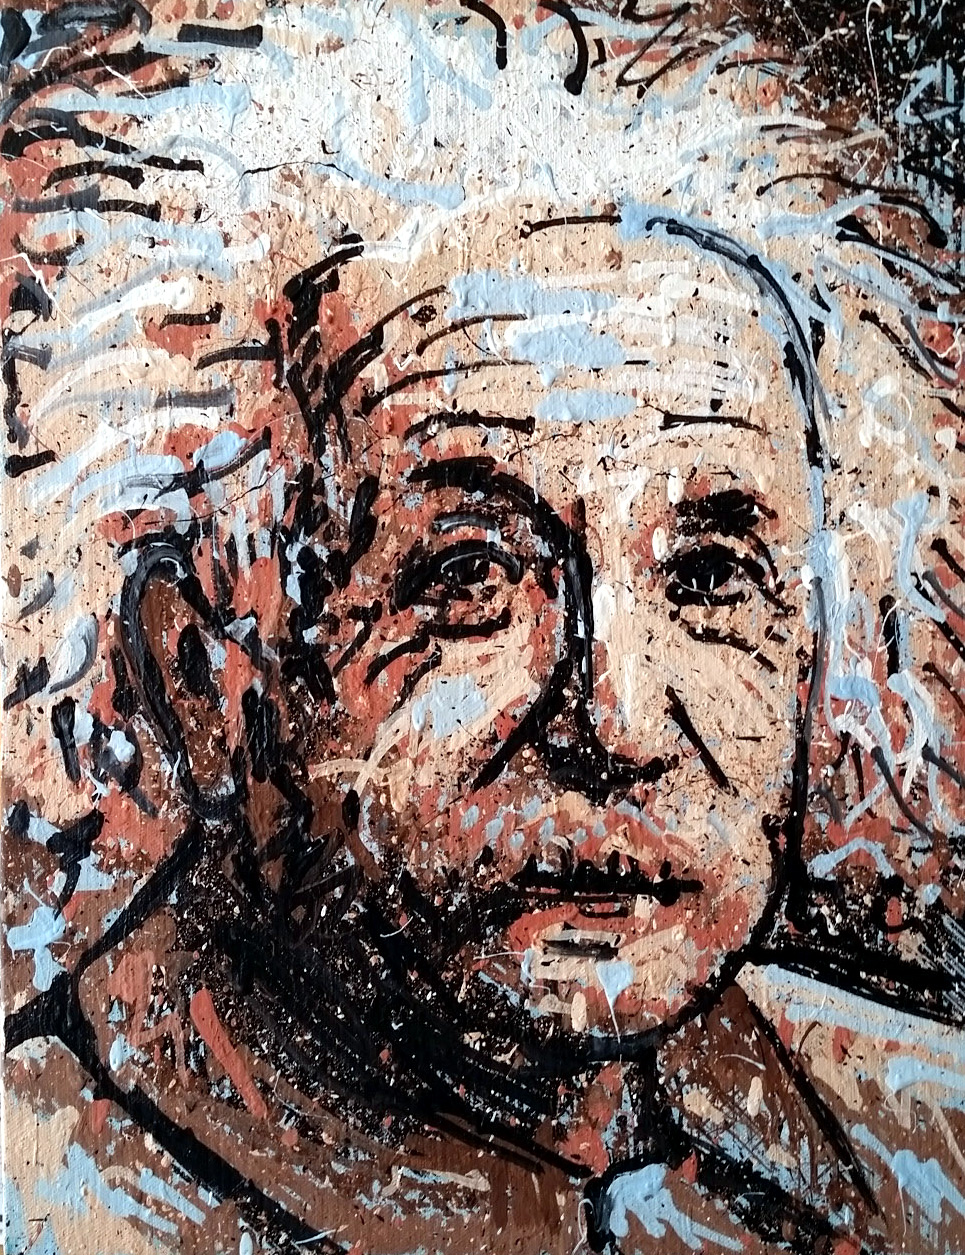 GeorgeWashingtonUniversity_cloudPainter_PindarVanArman_Einstein.jpg